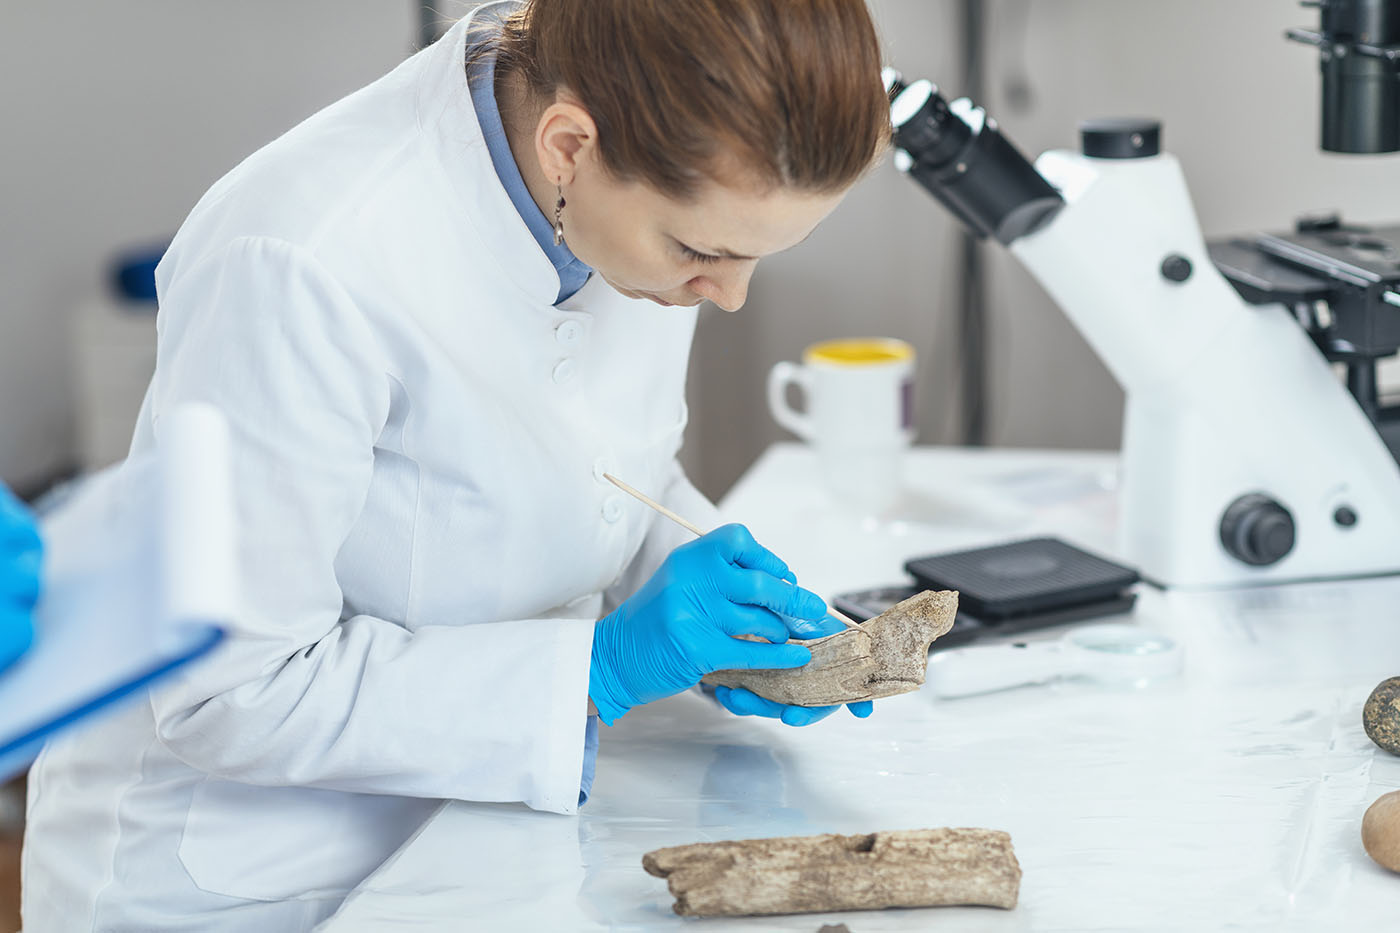 How To Become A Forensic Anthropologist Career And Salary Information